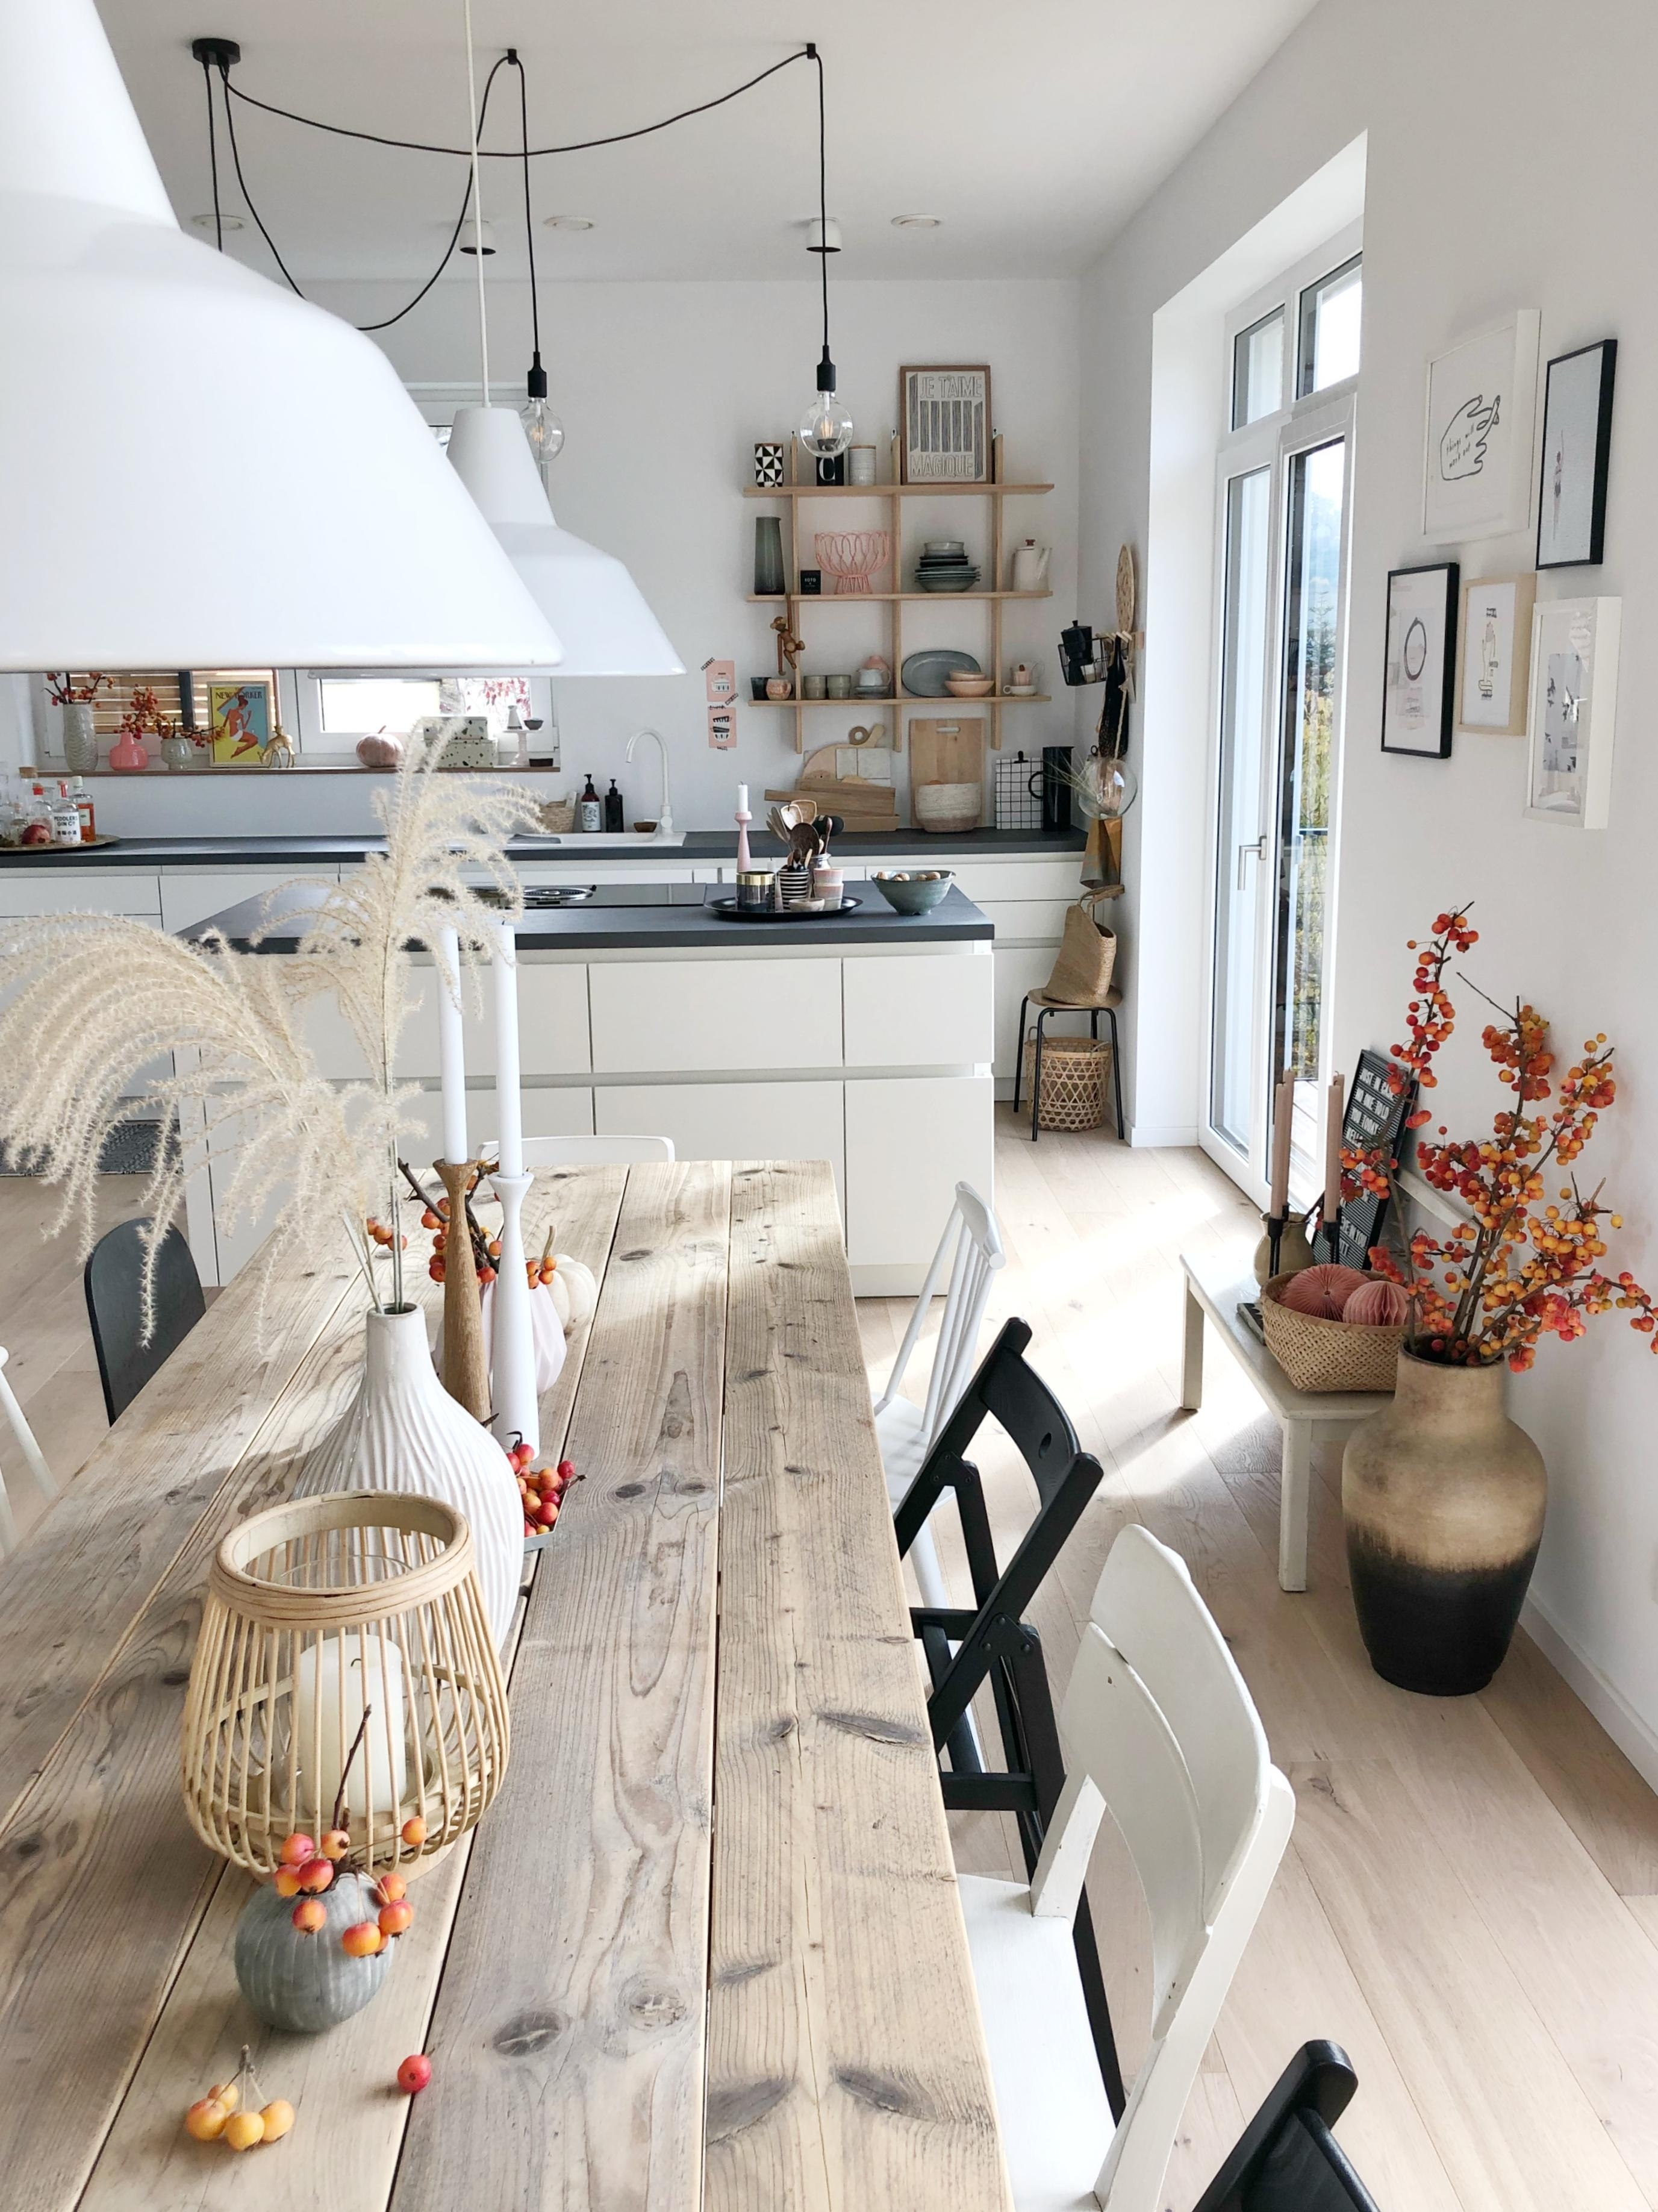 Herbstdekoration!